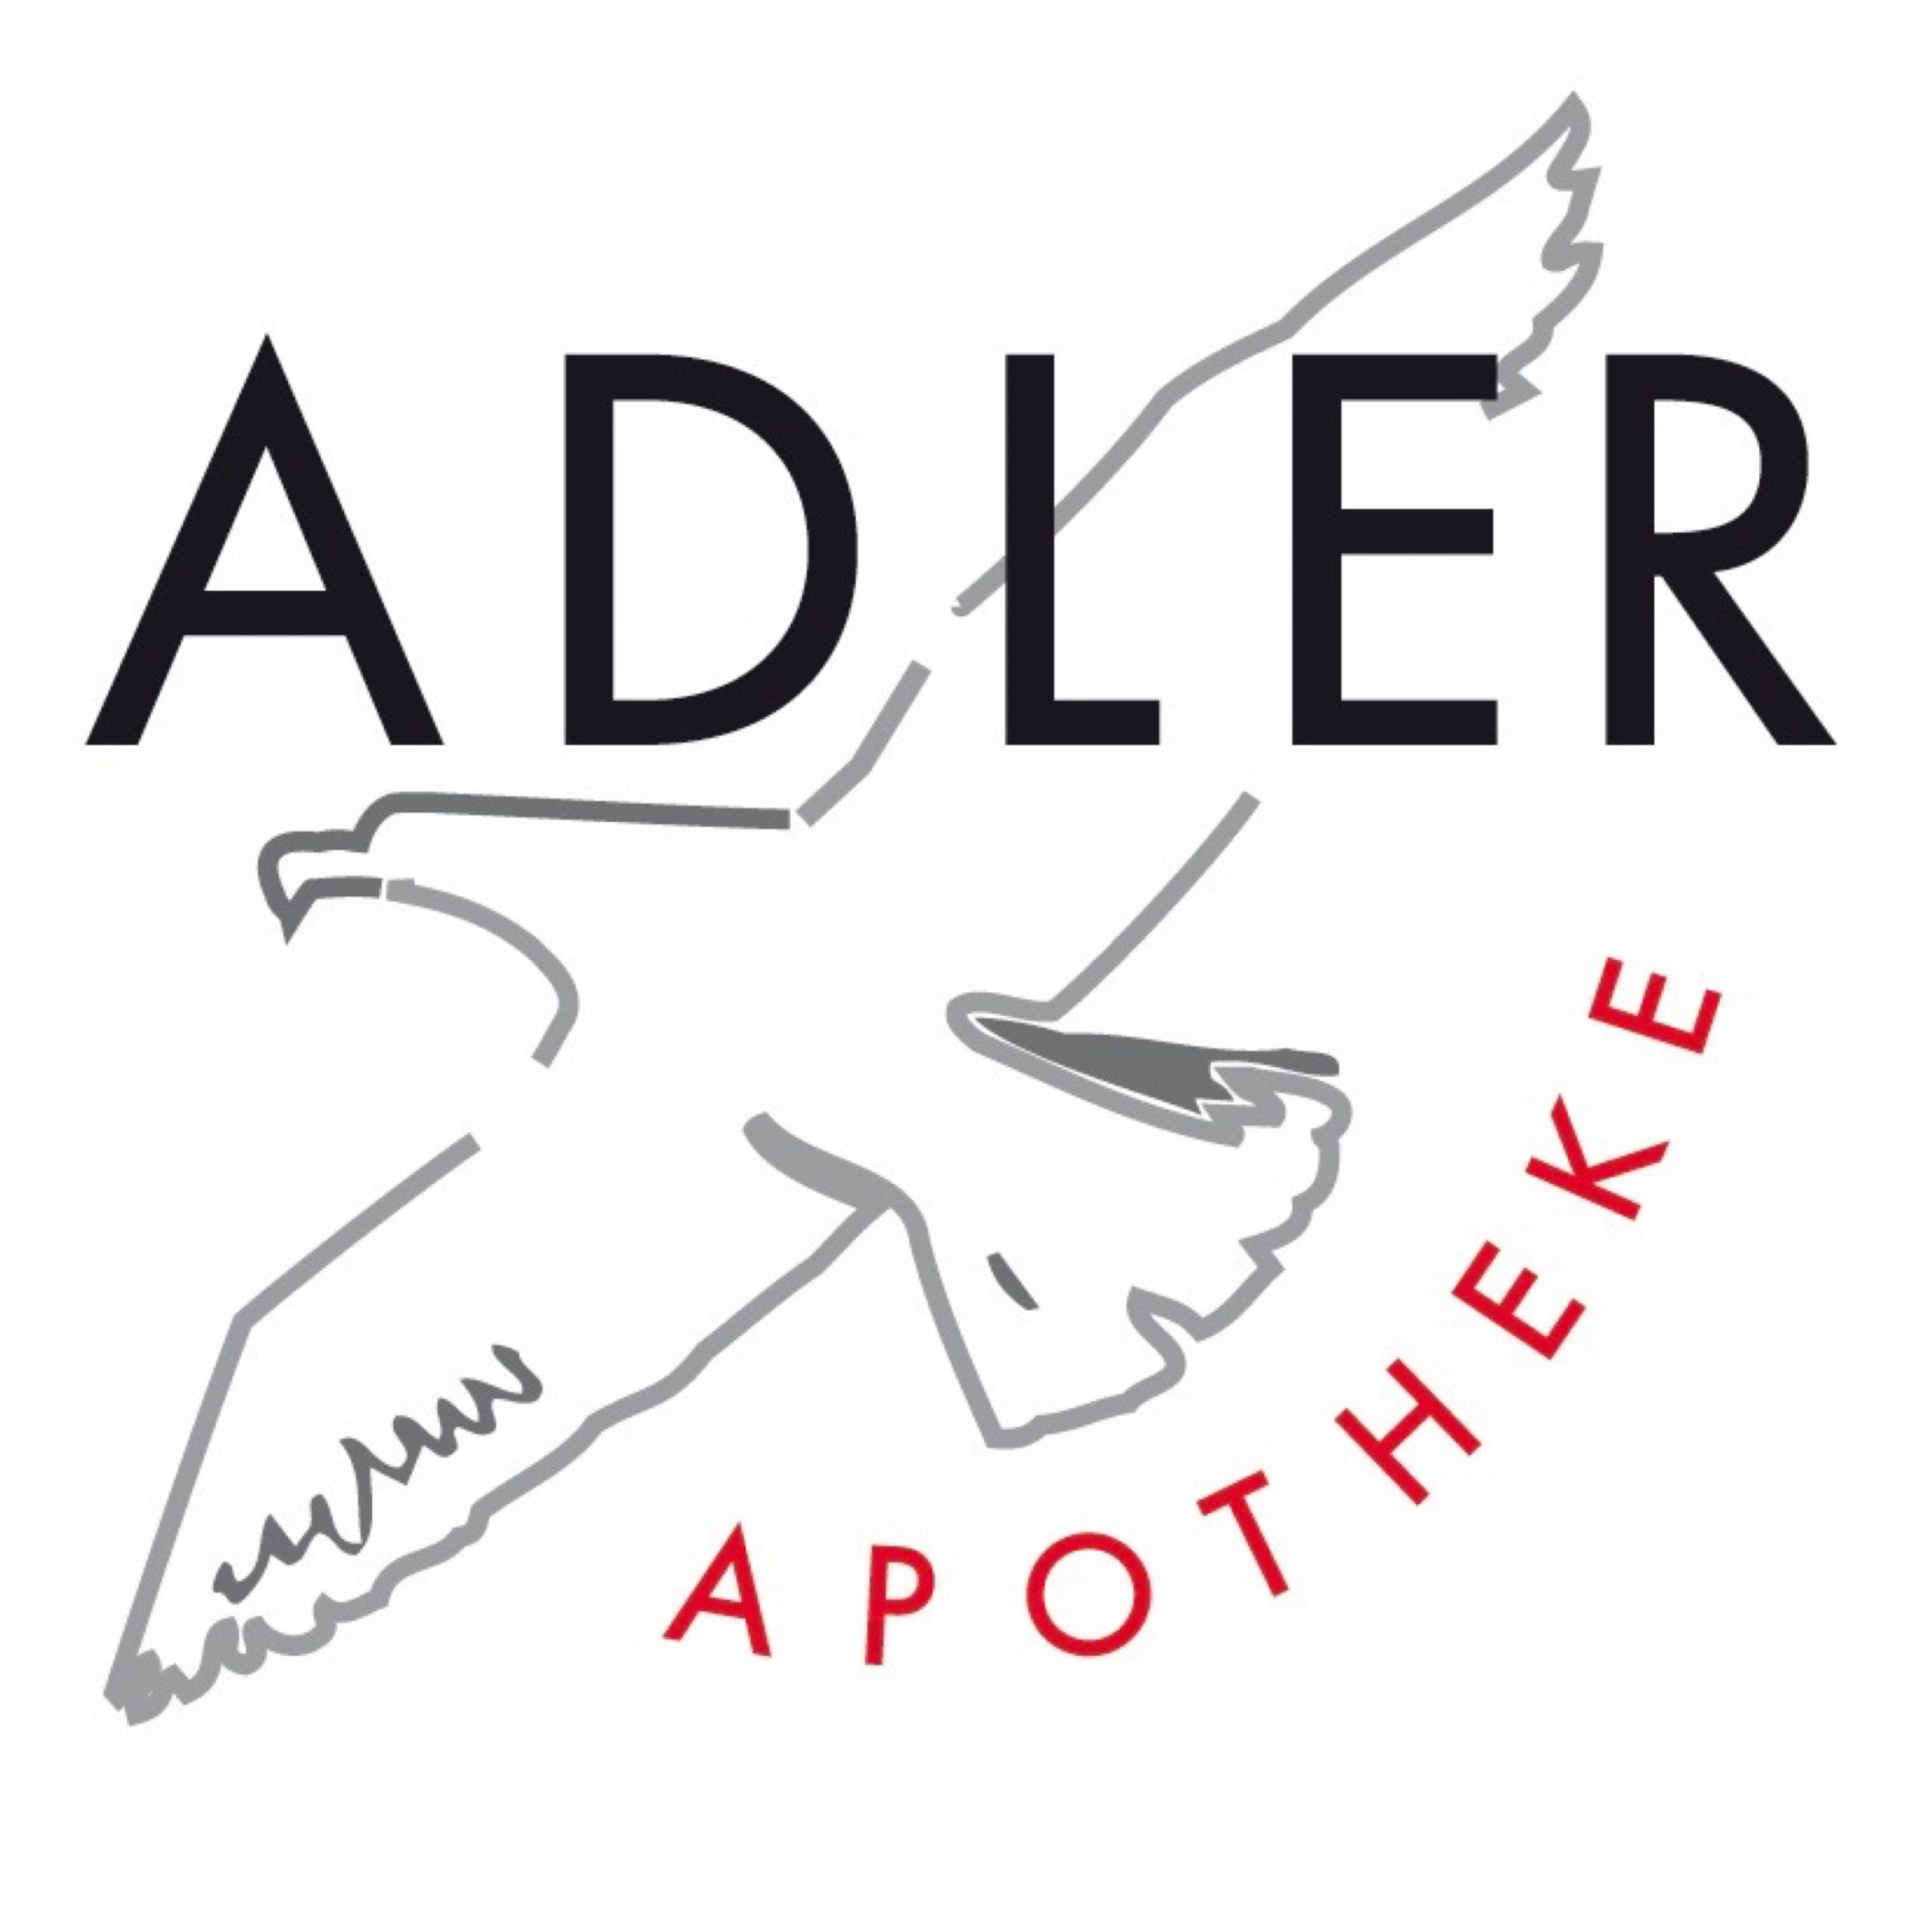 adler apotheke01 scaled